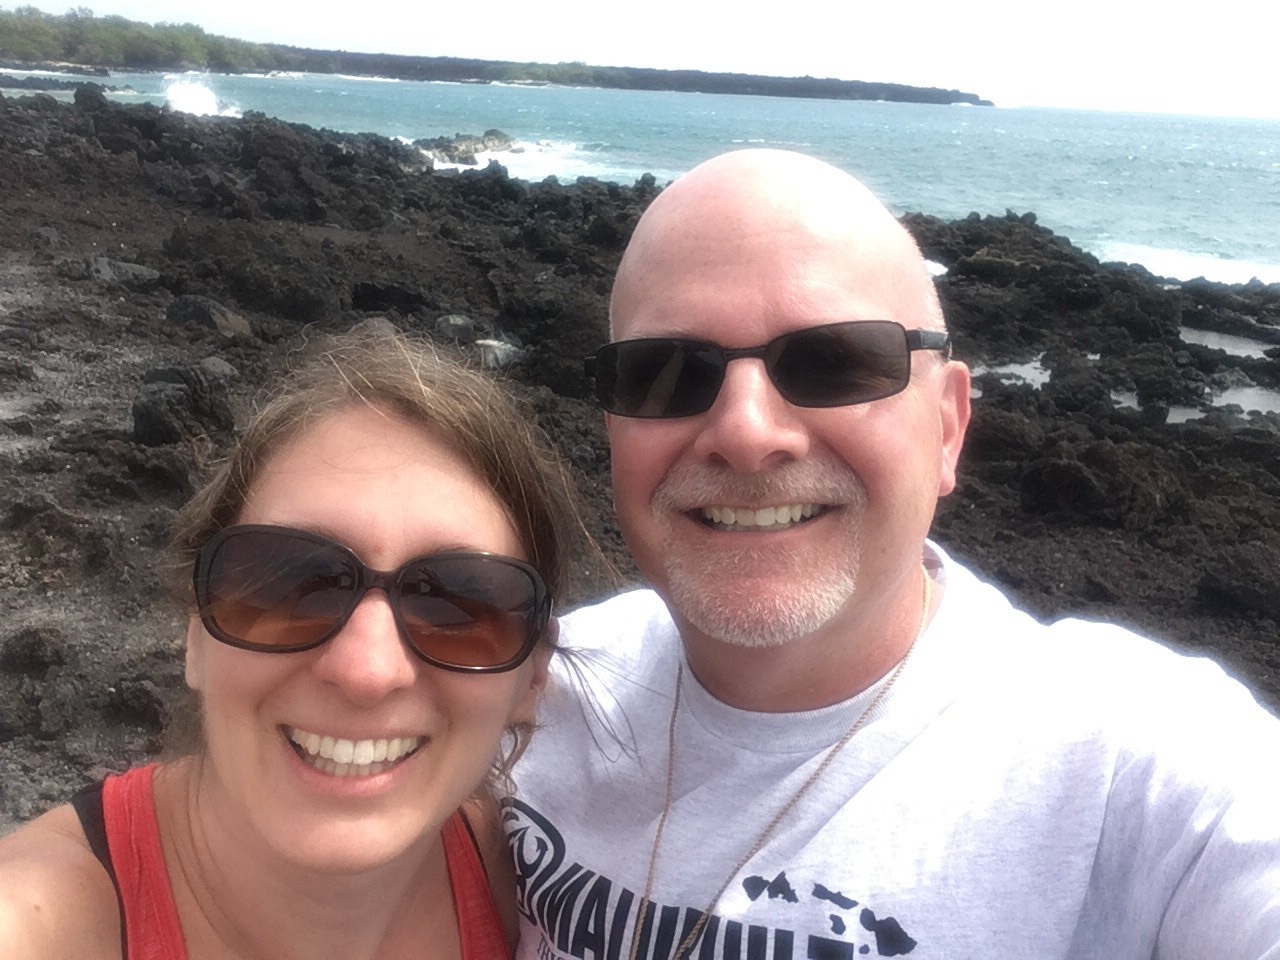 Jim and Heather at the lava fields in Maui, Hawaii